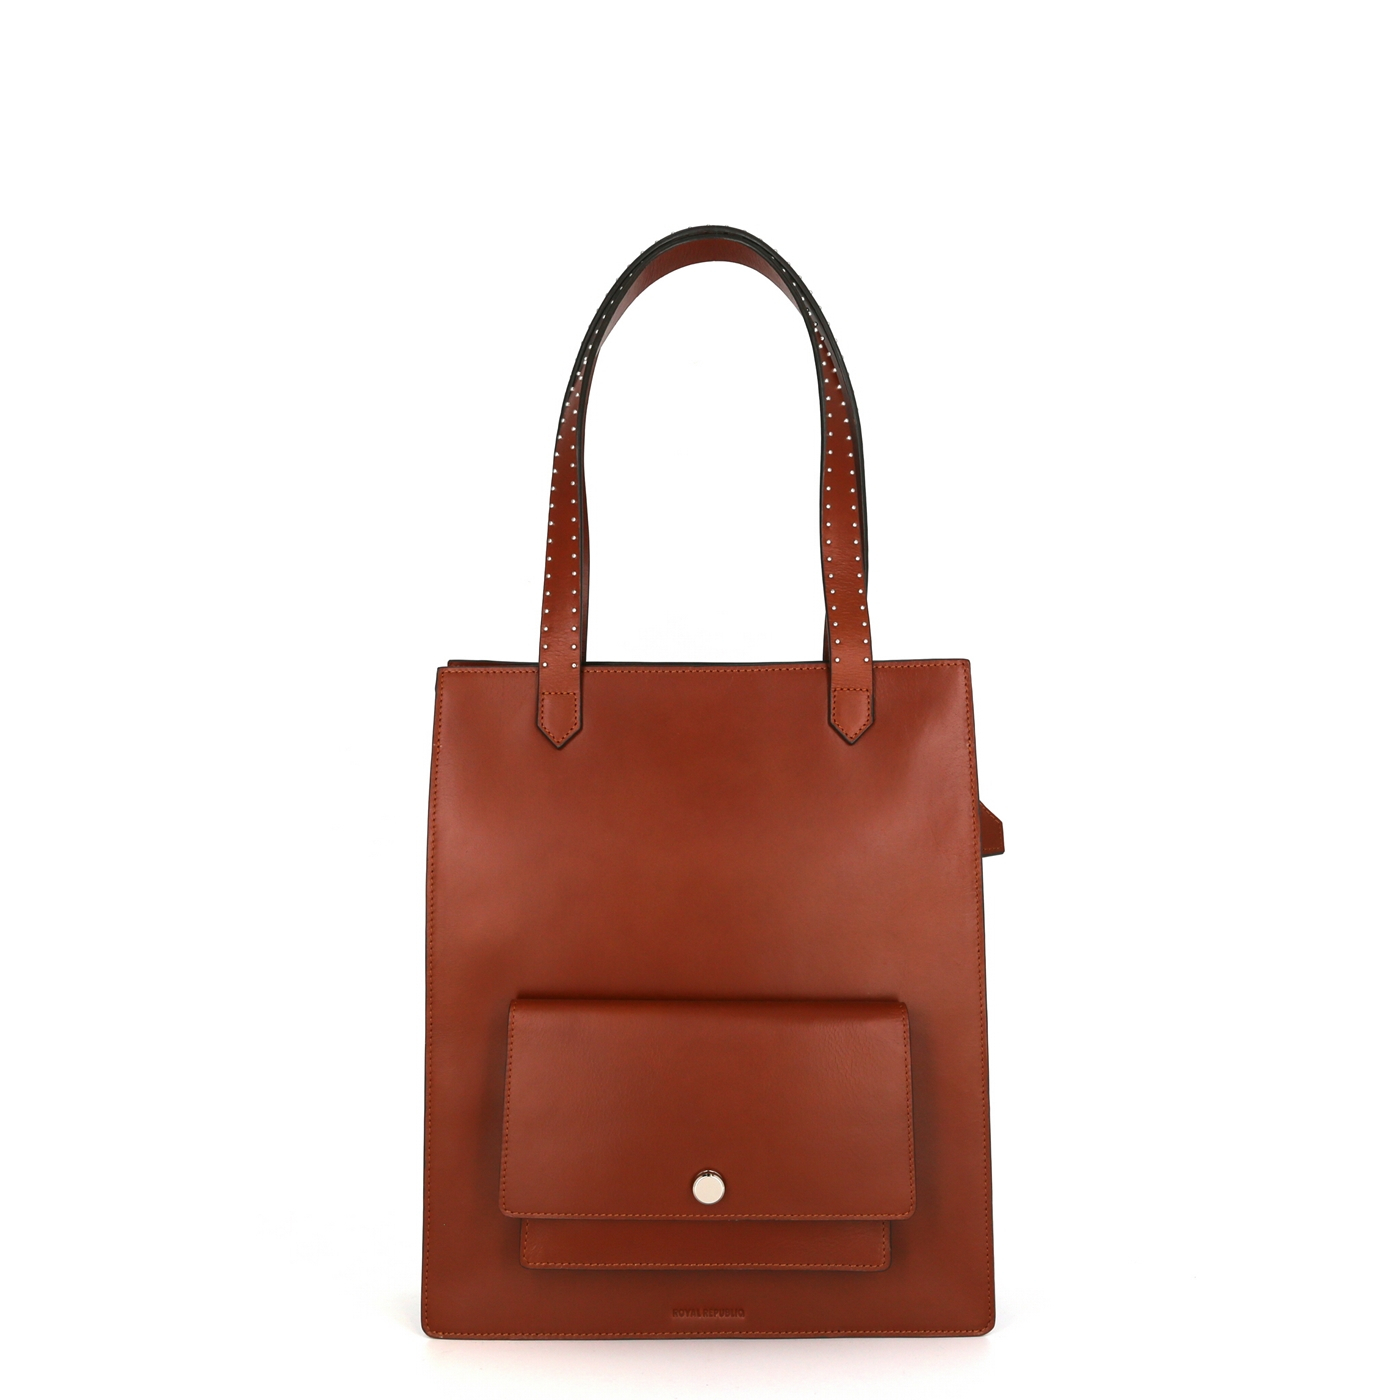 Bilde av Bridge 194 Handbag 2 308 001 194 14 150011